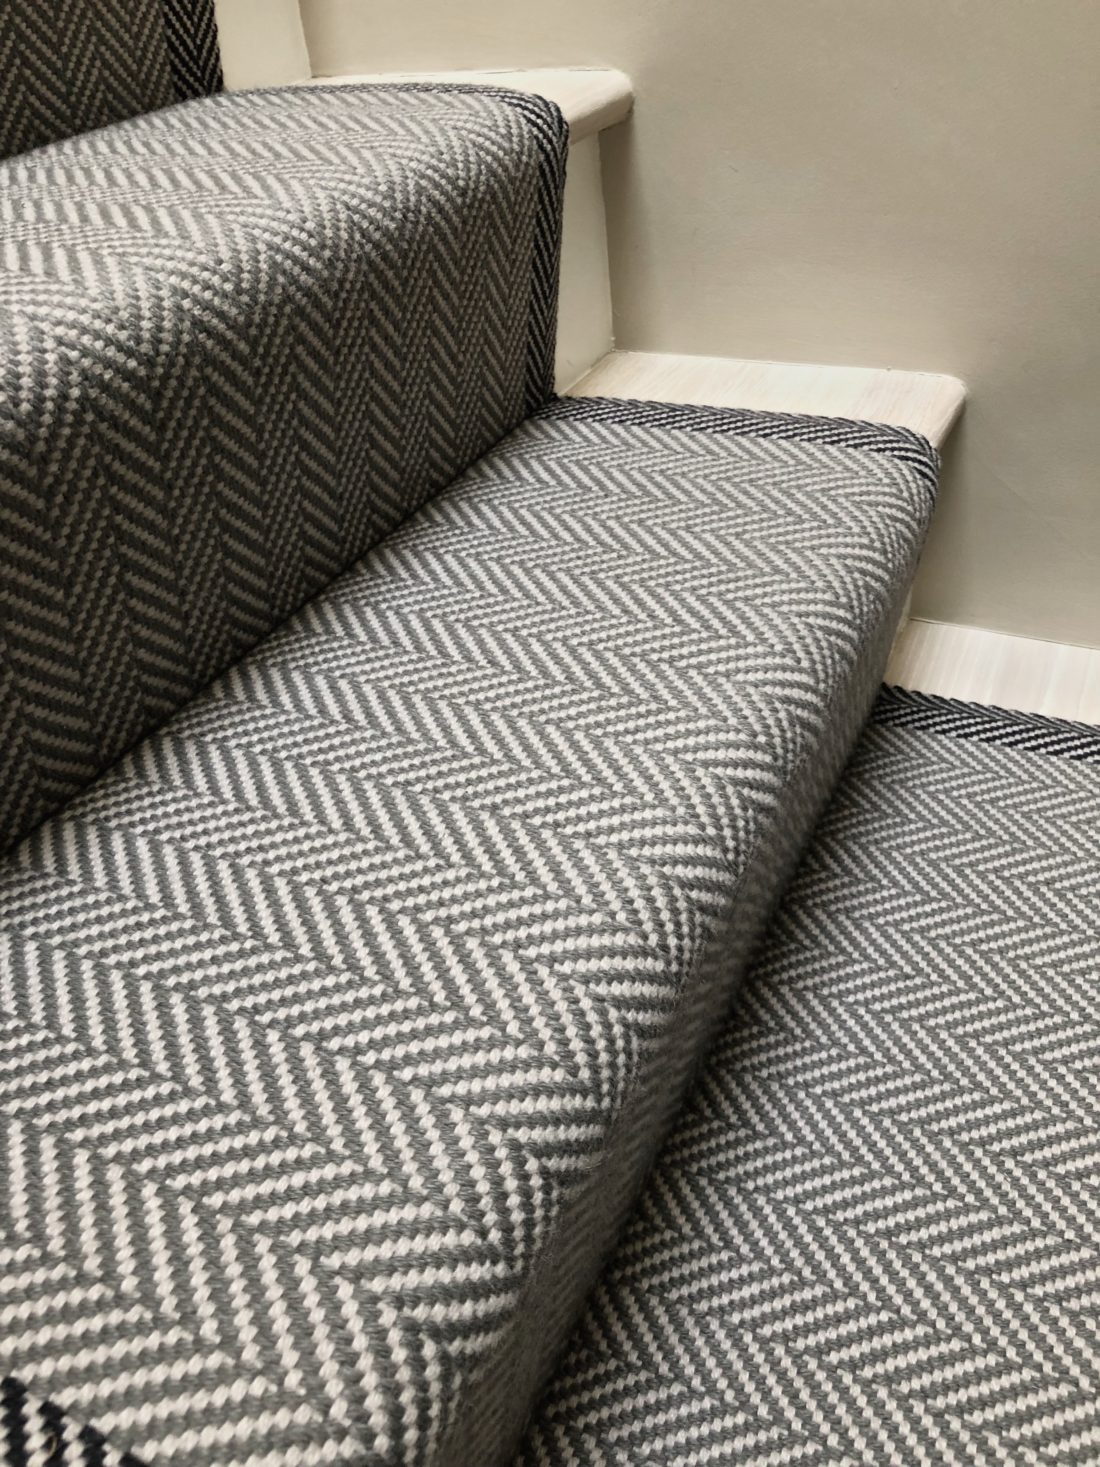 Felton Border Seal Grey Off The Loom | Herringbone Carpet For Stairs | High Traffic | Textured | Classical Design | Striped | Carpet Stair Treads